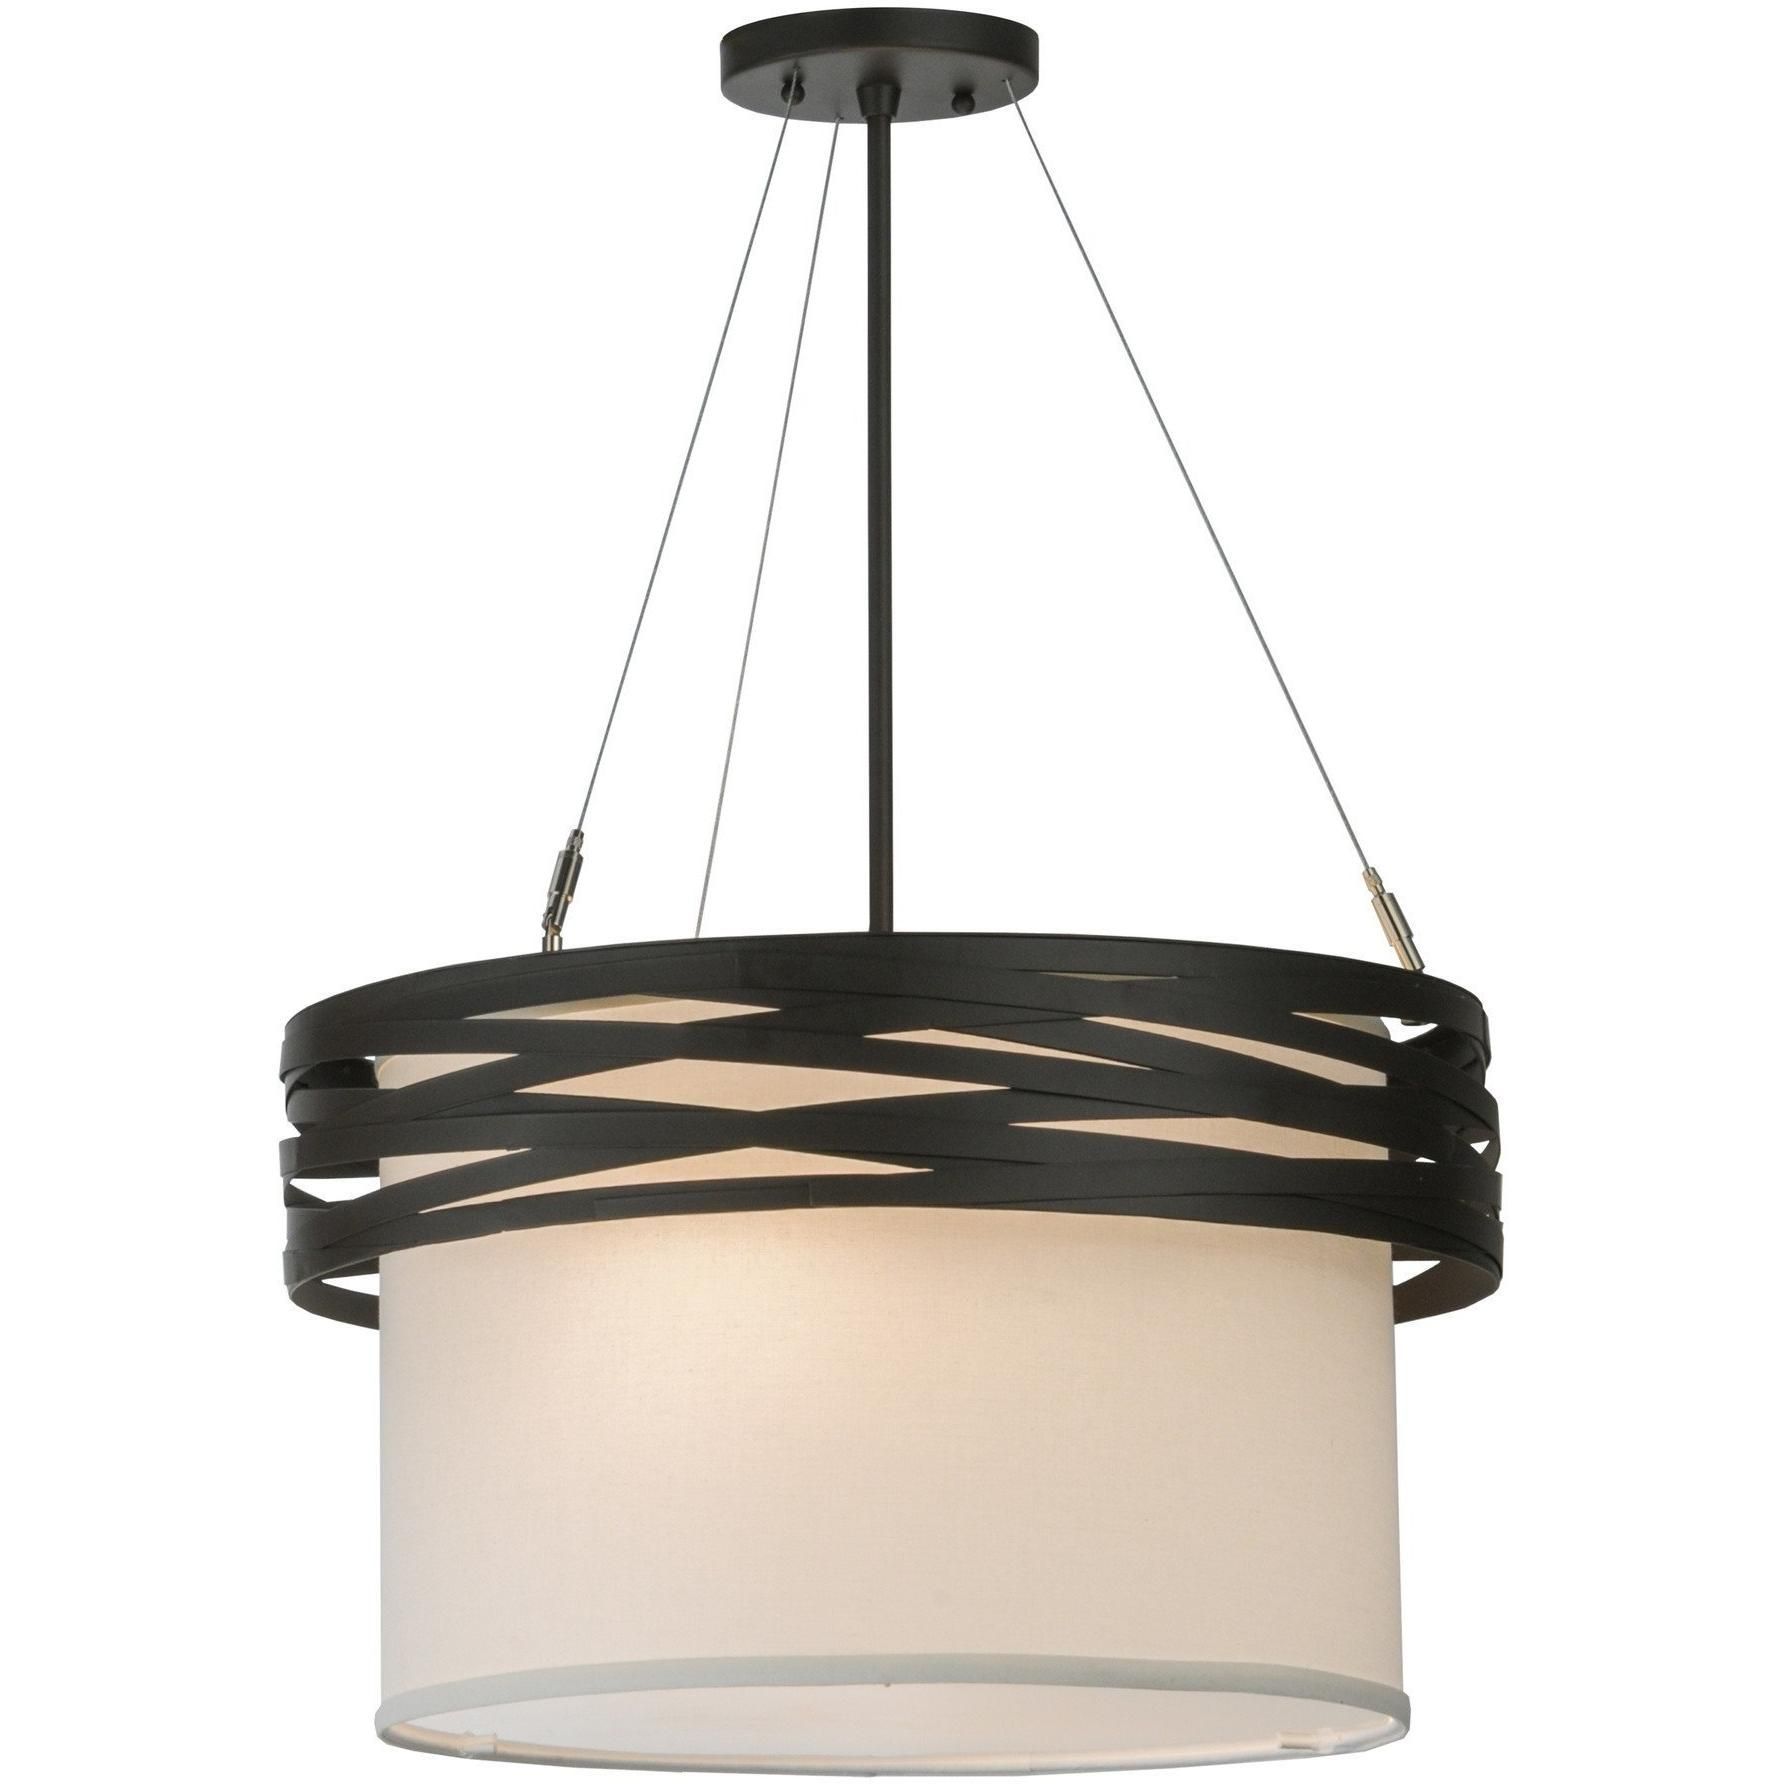 inch w cilindro complex pendant pendants ceilings and lights